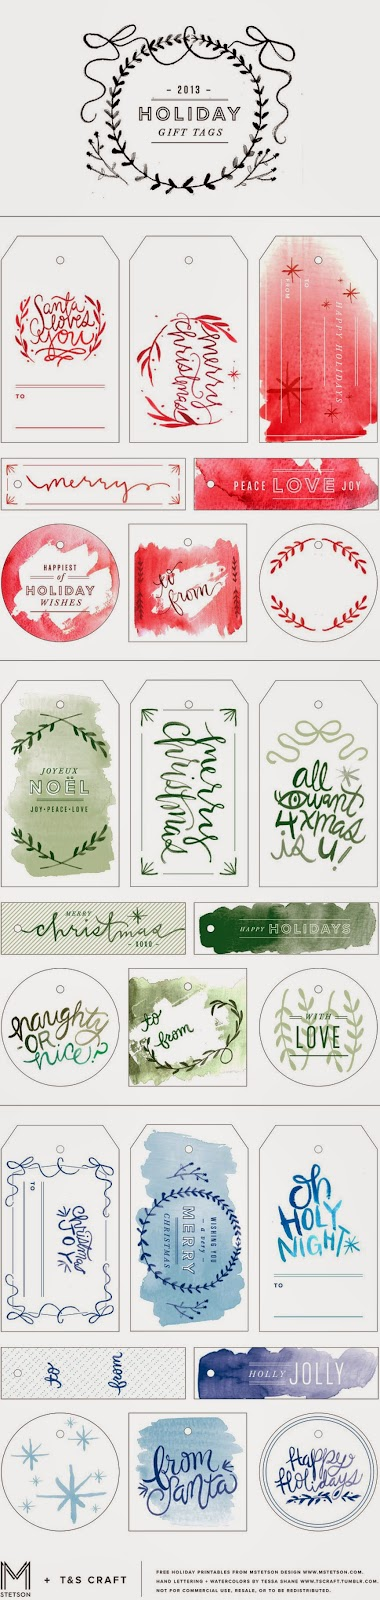 http://www.mstetson.com/2013/12/18/watercolor-holiday-gift-tag-printables/